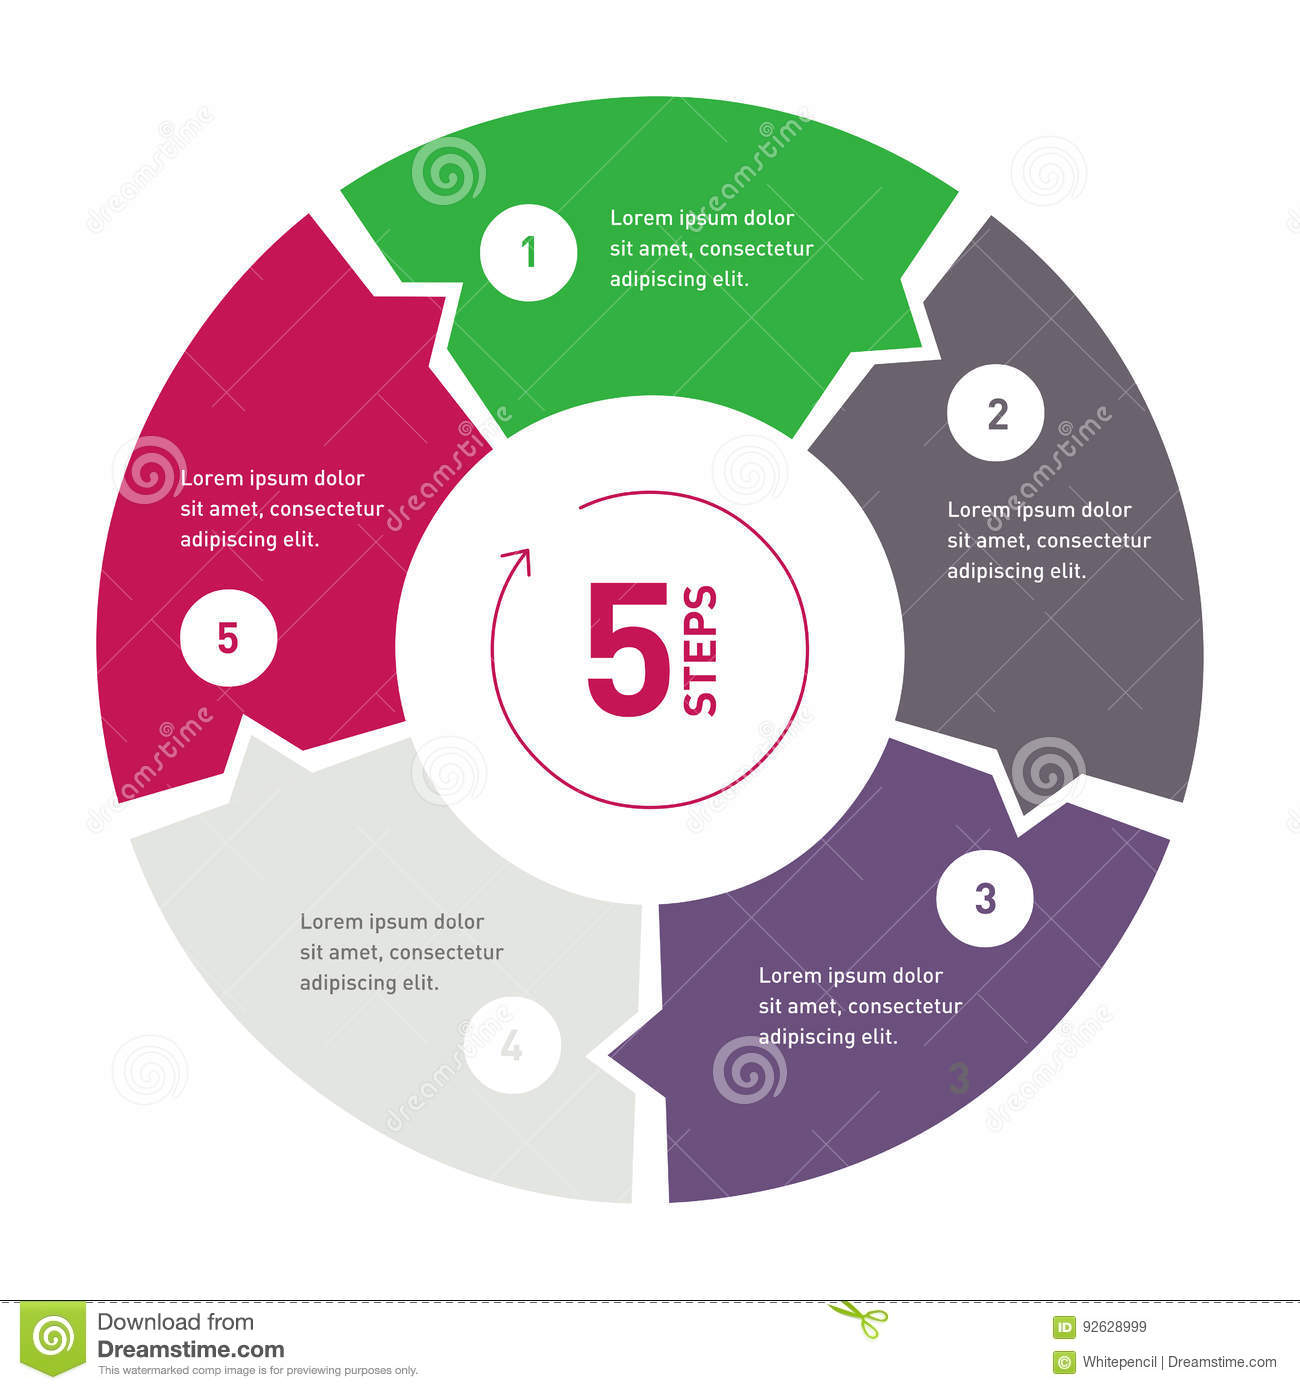 hight resolution of 5 step process circle infographic template for diagram annual report presentation chart web design